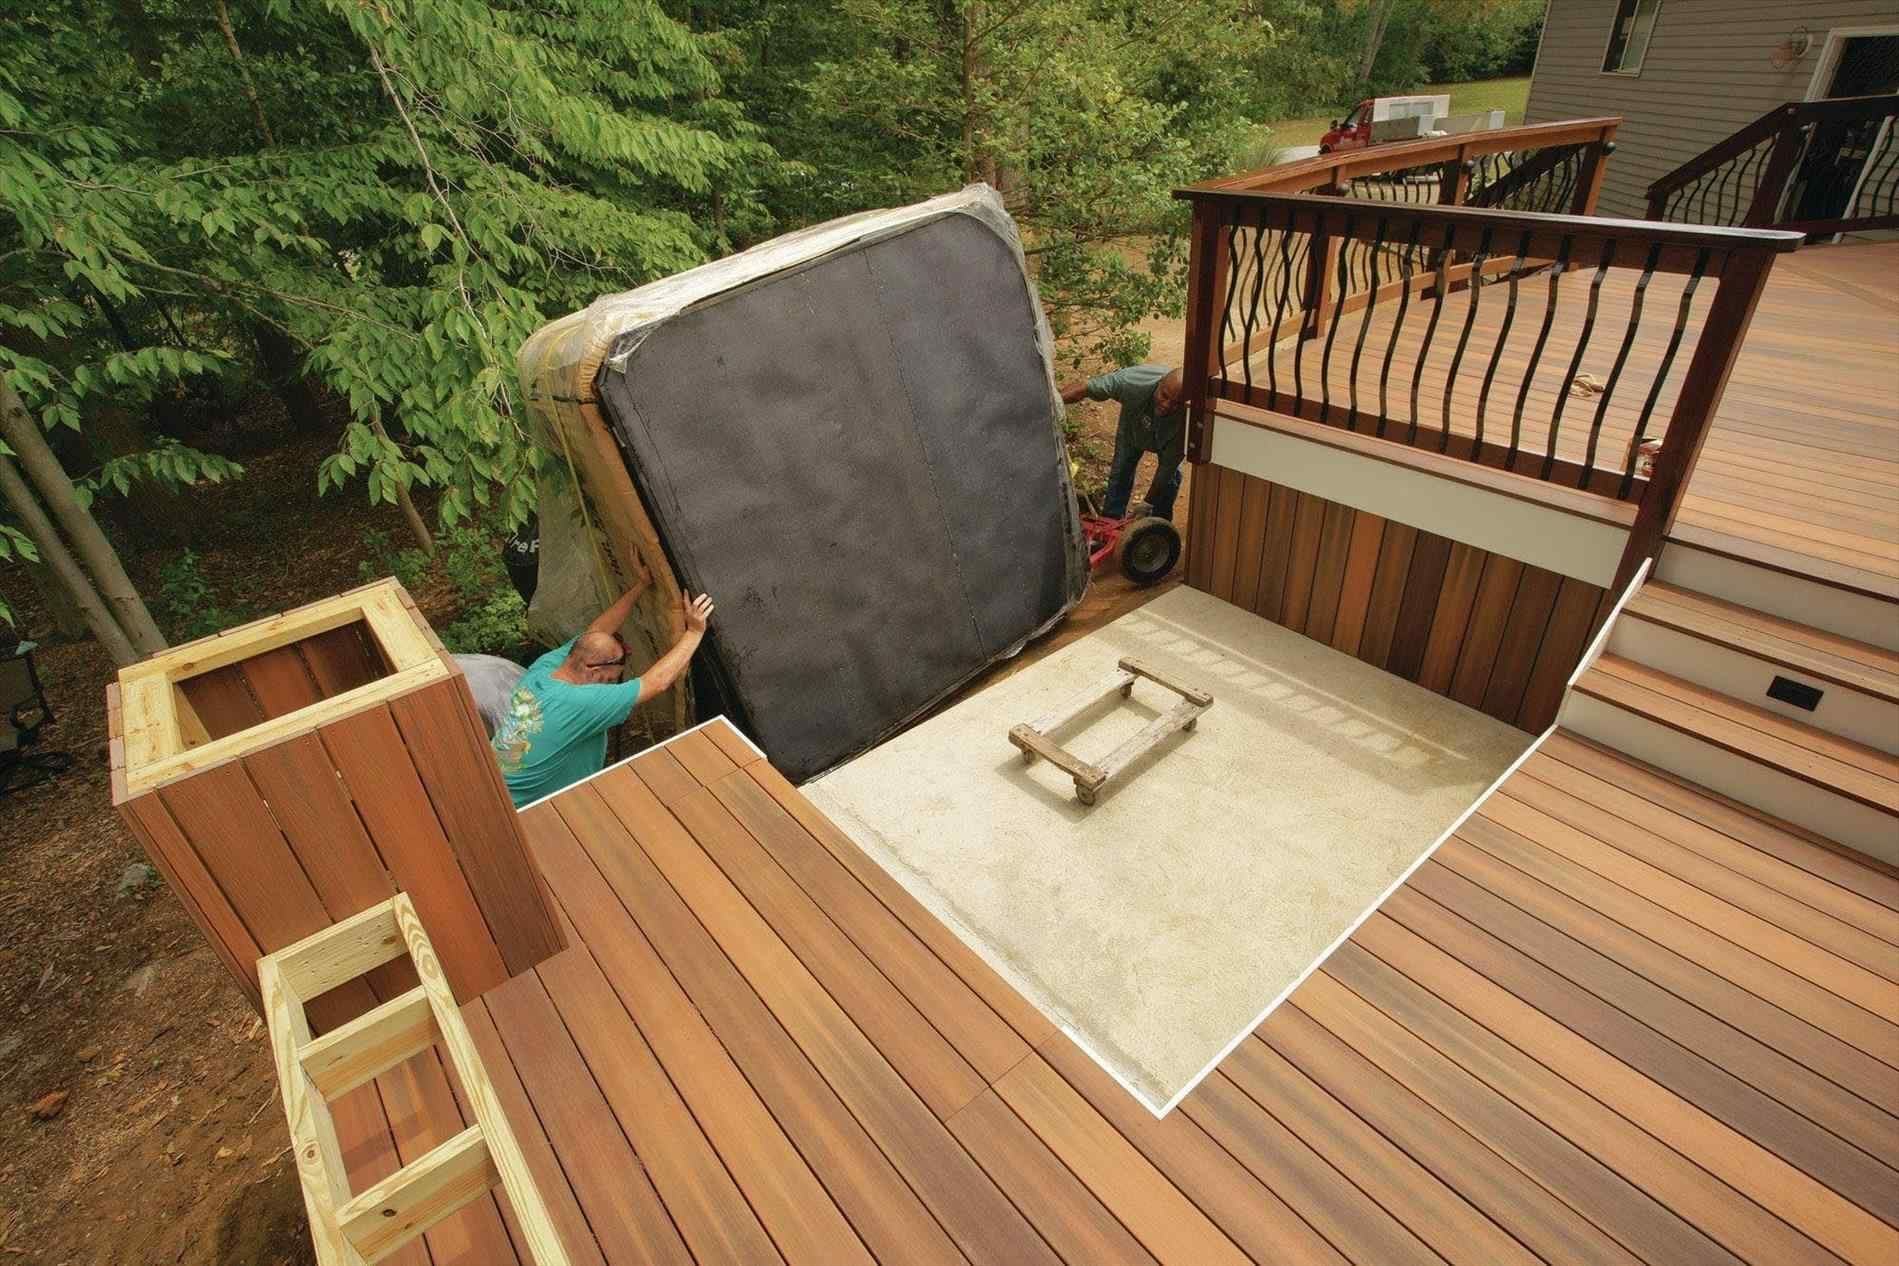 13 Genius Concepts Of How To Craft Backyard Deck Ideas With Hot Tub Hot Tub Backyard Hot Tub Deck Hot Tub Landscaping